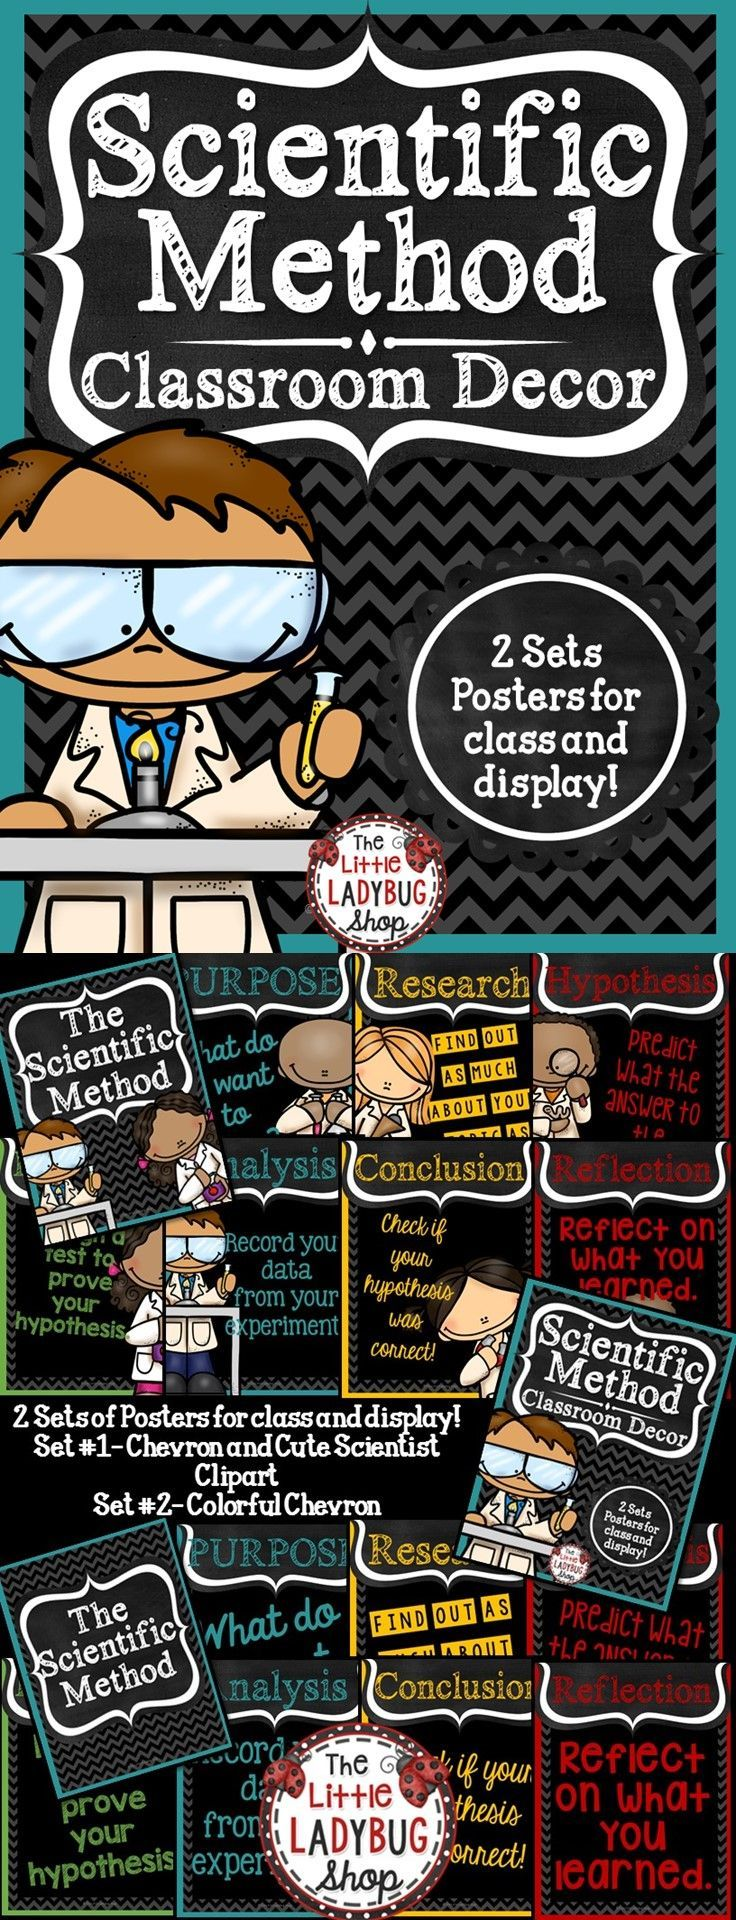 Scientific Method Posters   Scientific Method   Science  These Scientific Method Posters are PERFECT for your SCIENCE class decor.   ★★Included★★ ★7 Posters CHEVRON Colorful with Scientist Clipart {Purpose, Research, Hypothesis, Experiment, Analysis, Conclusion} Extra Reflection Poster ★7 Posters CHEVRON Colorful {Purpose, Research, Hypothesis, Experiment, Analysis, Conclusion} Extra Reflection Poster ★7 Student Cards for Interactive Notebooks- CHEVRON Colorful {Purpose, Research…